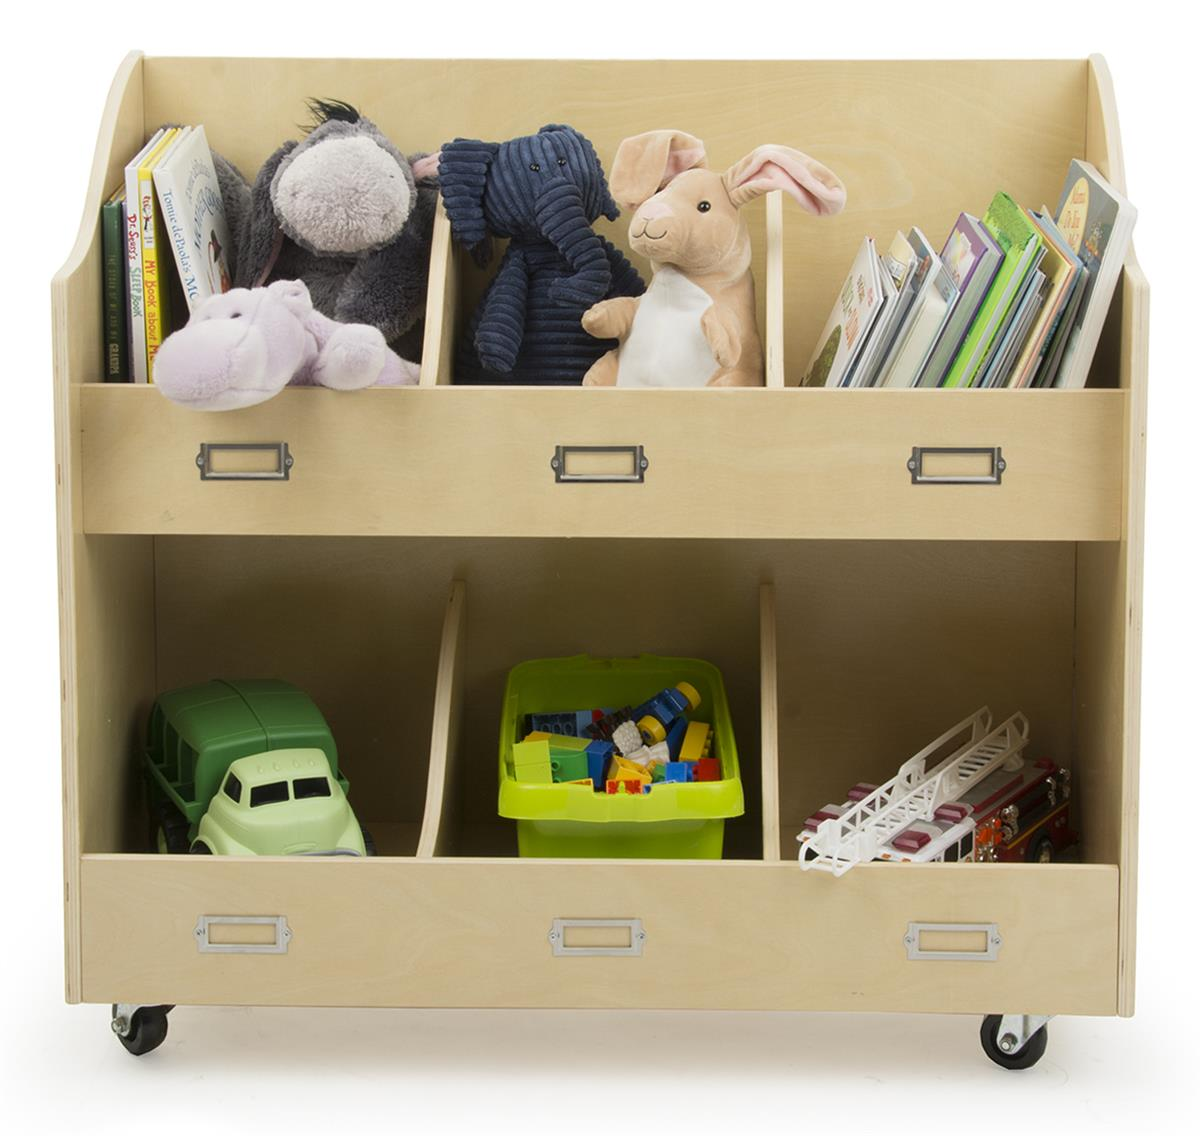 Rolling Toy Carts Wooden Storage With Wheels